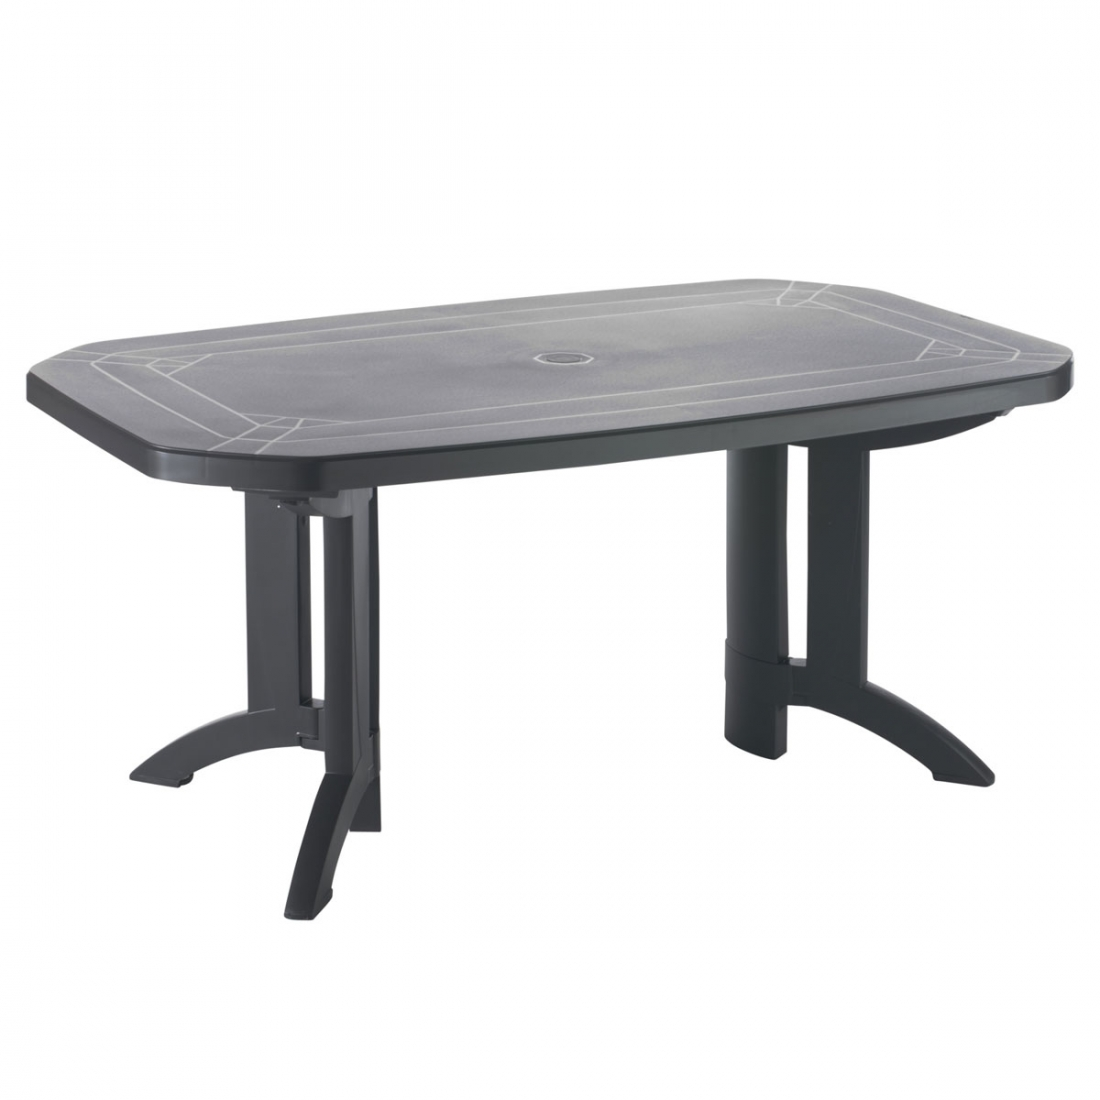 Table de jardin vega 165x100 grosfillex zendart design - Table jardin grofilex besancon ...